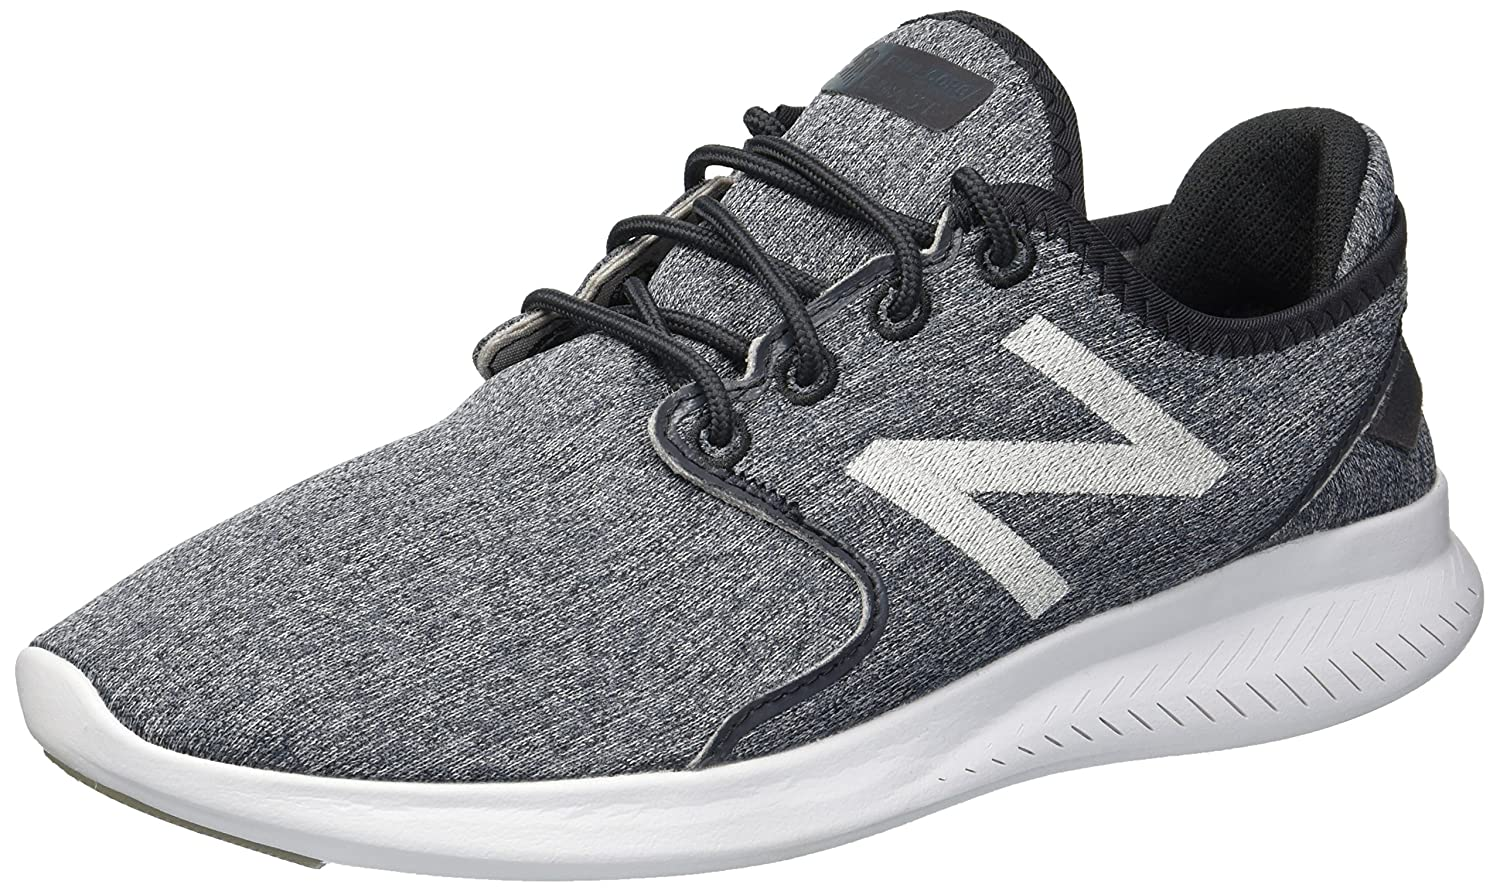 New Balance Women's Coast V3 Running Shoe B01N7LX664 9 B(M) US|Phantom/Overcast